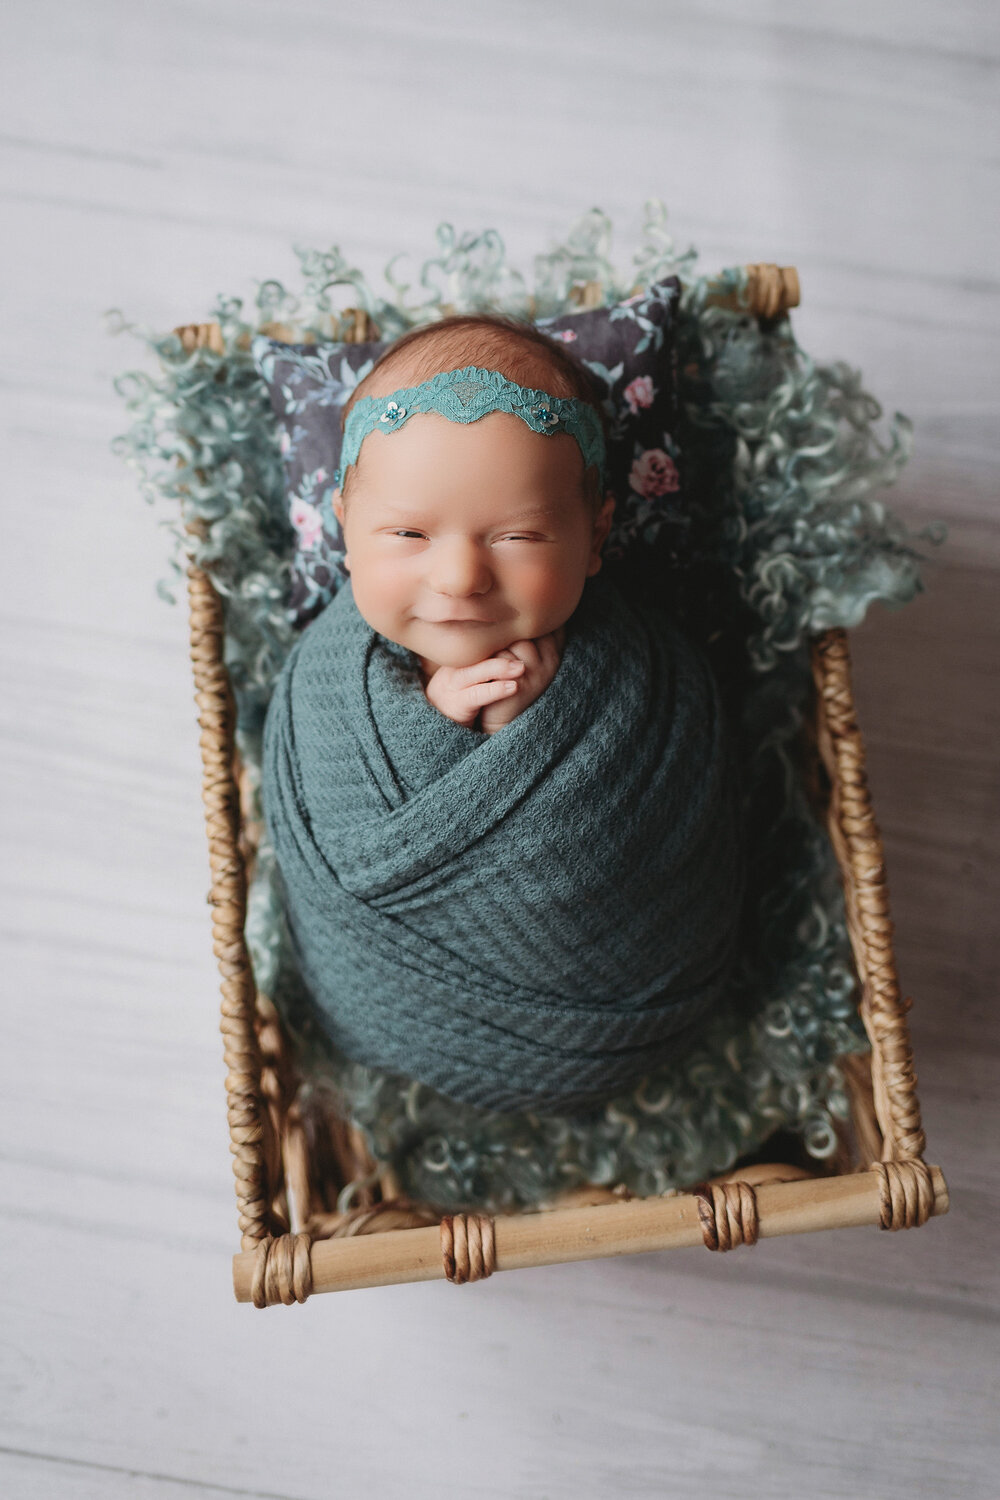 potato pose in teal with baby girl for newborn photography session in minneapolis mn